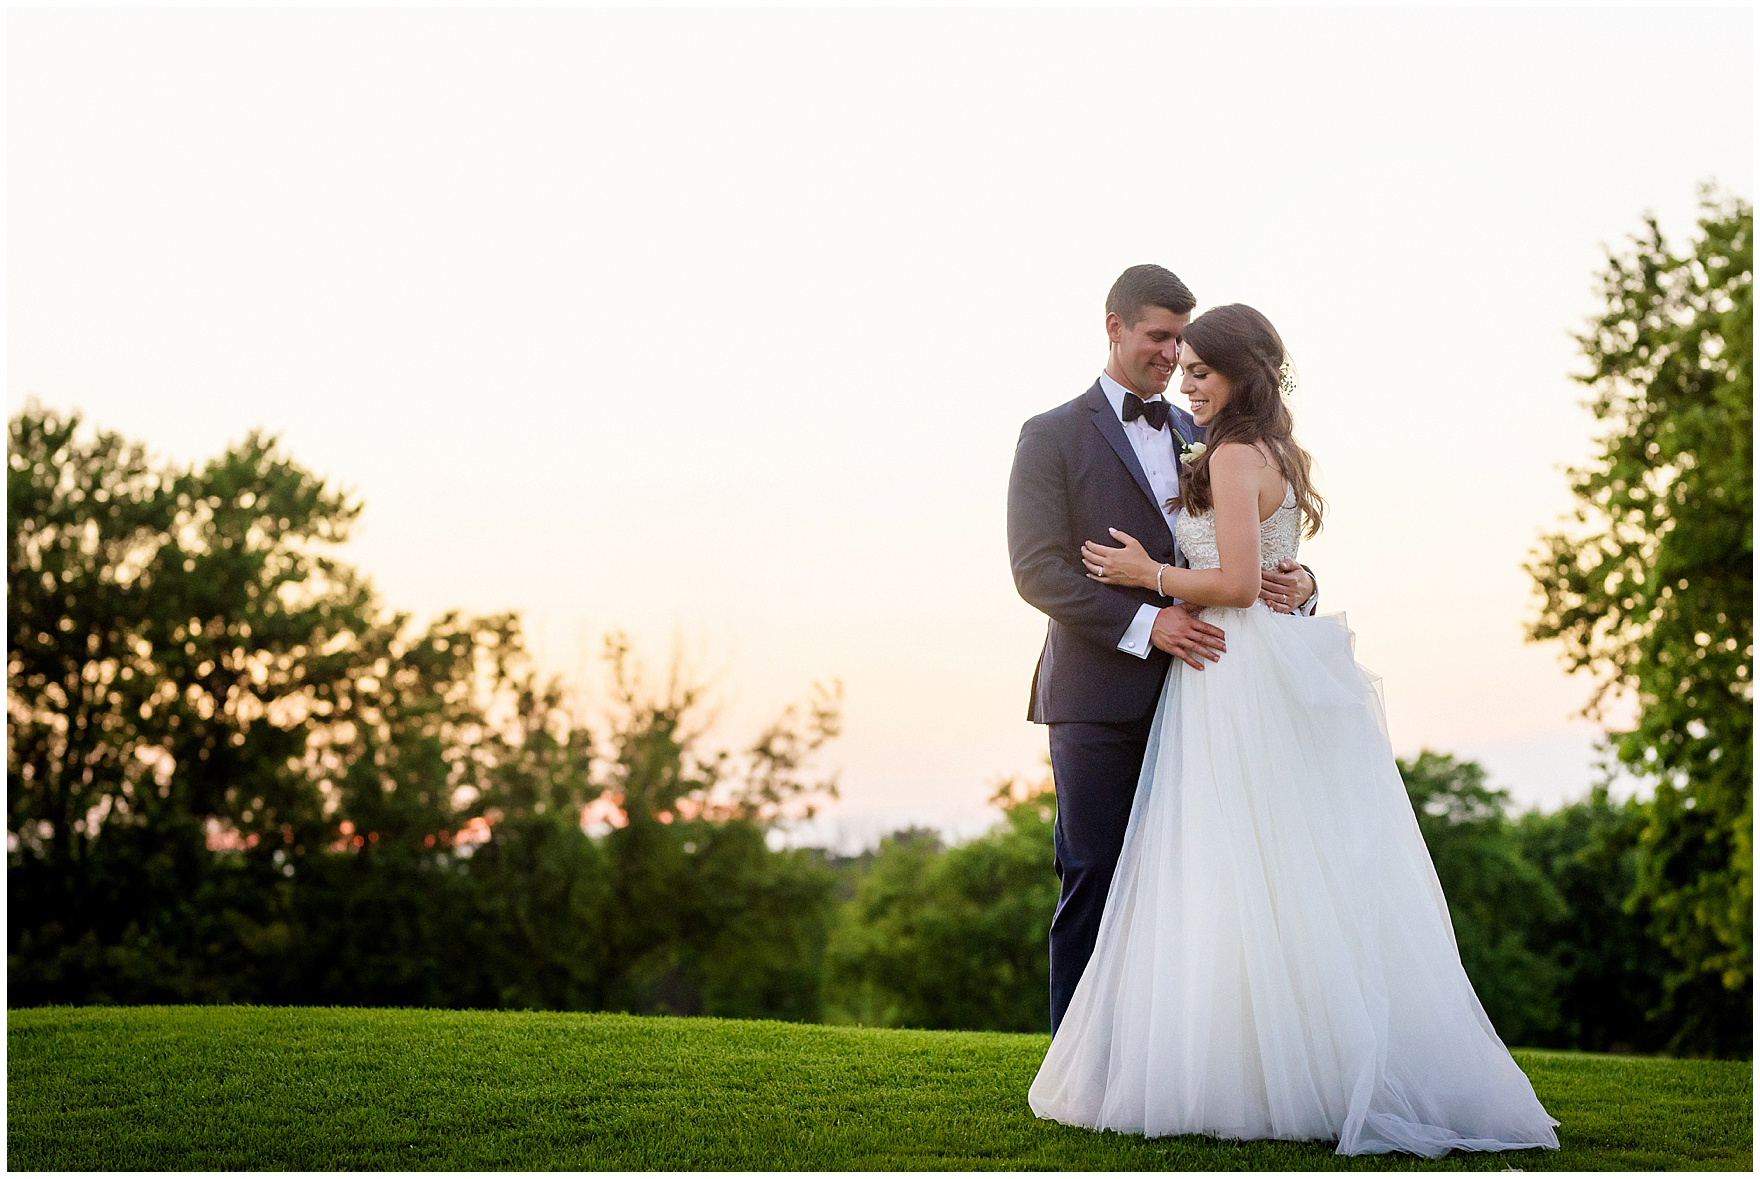 A bride and groom embrace on the golf course at sunset during a Biltmore Country Club Barrington wedding.